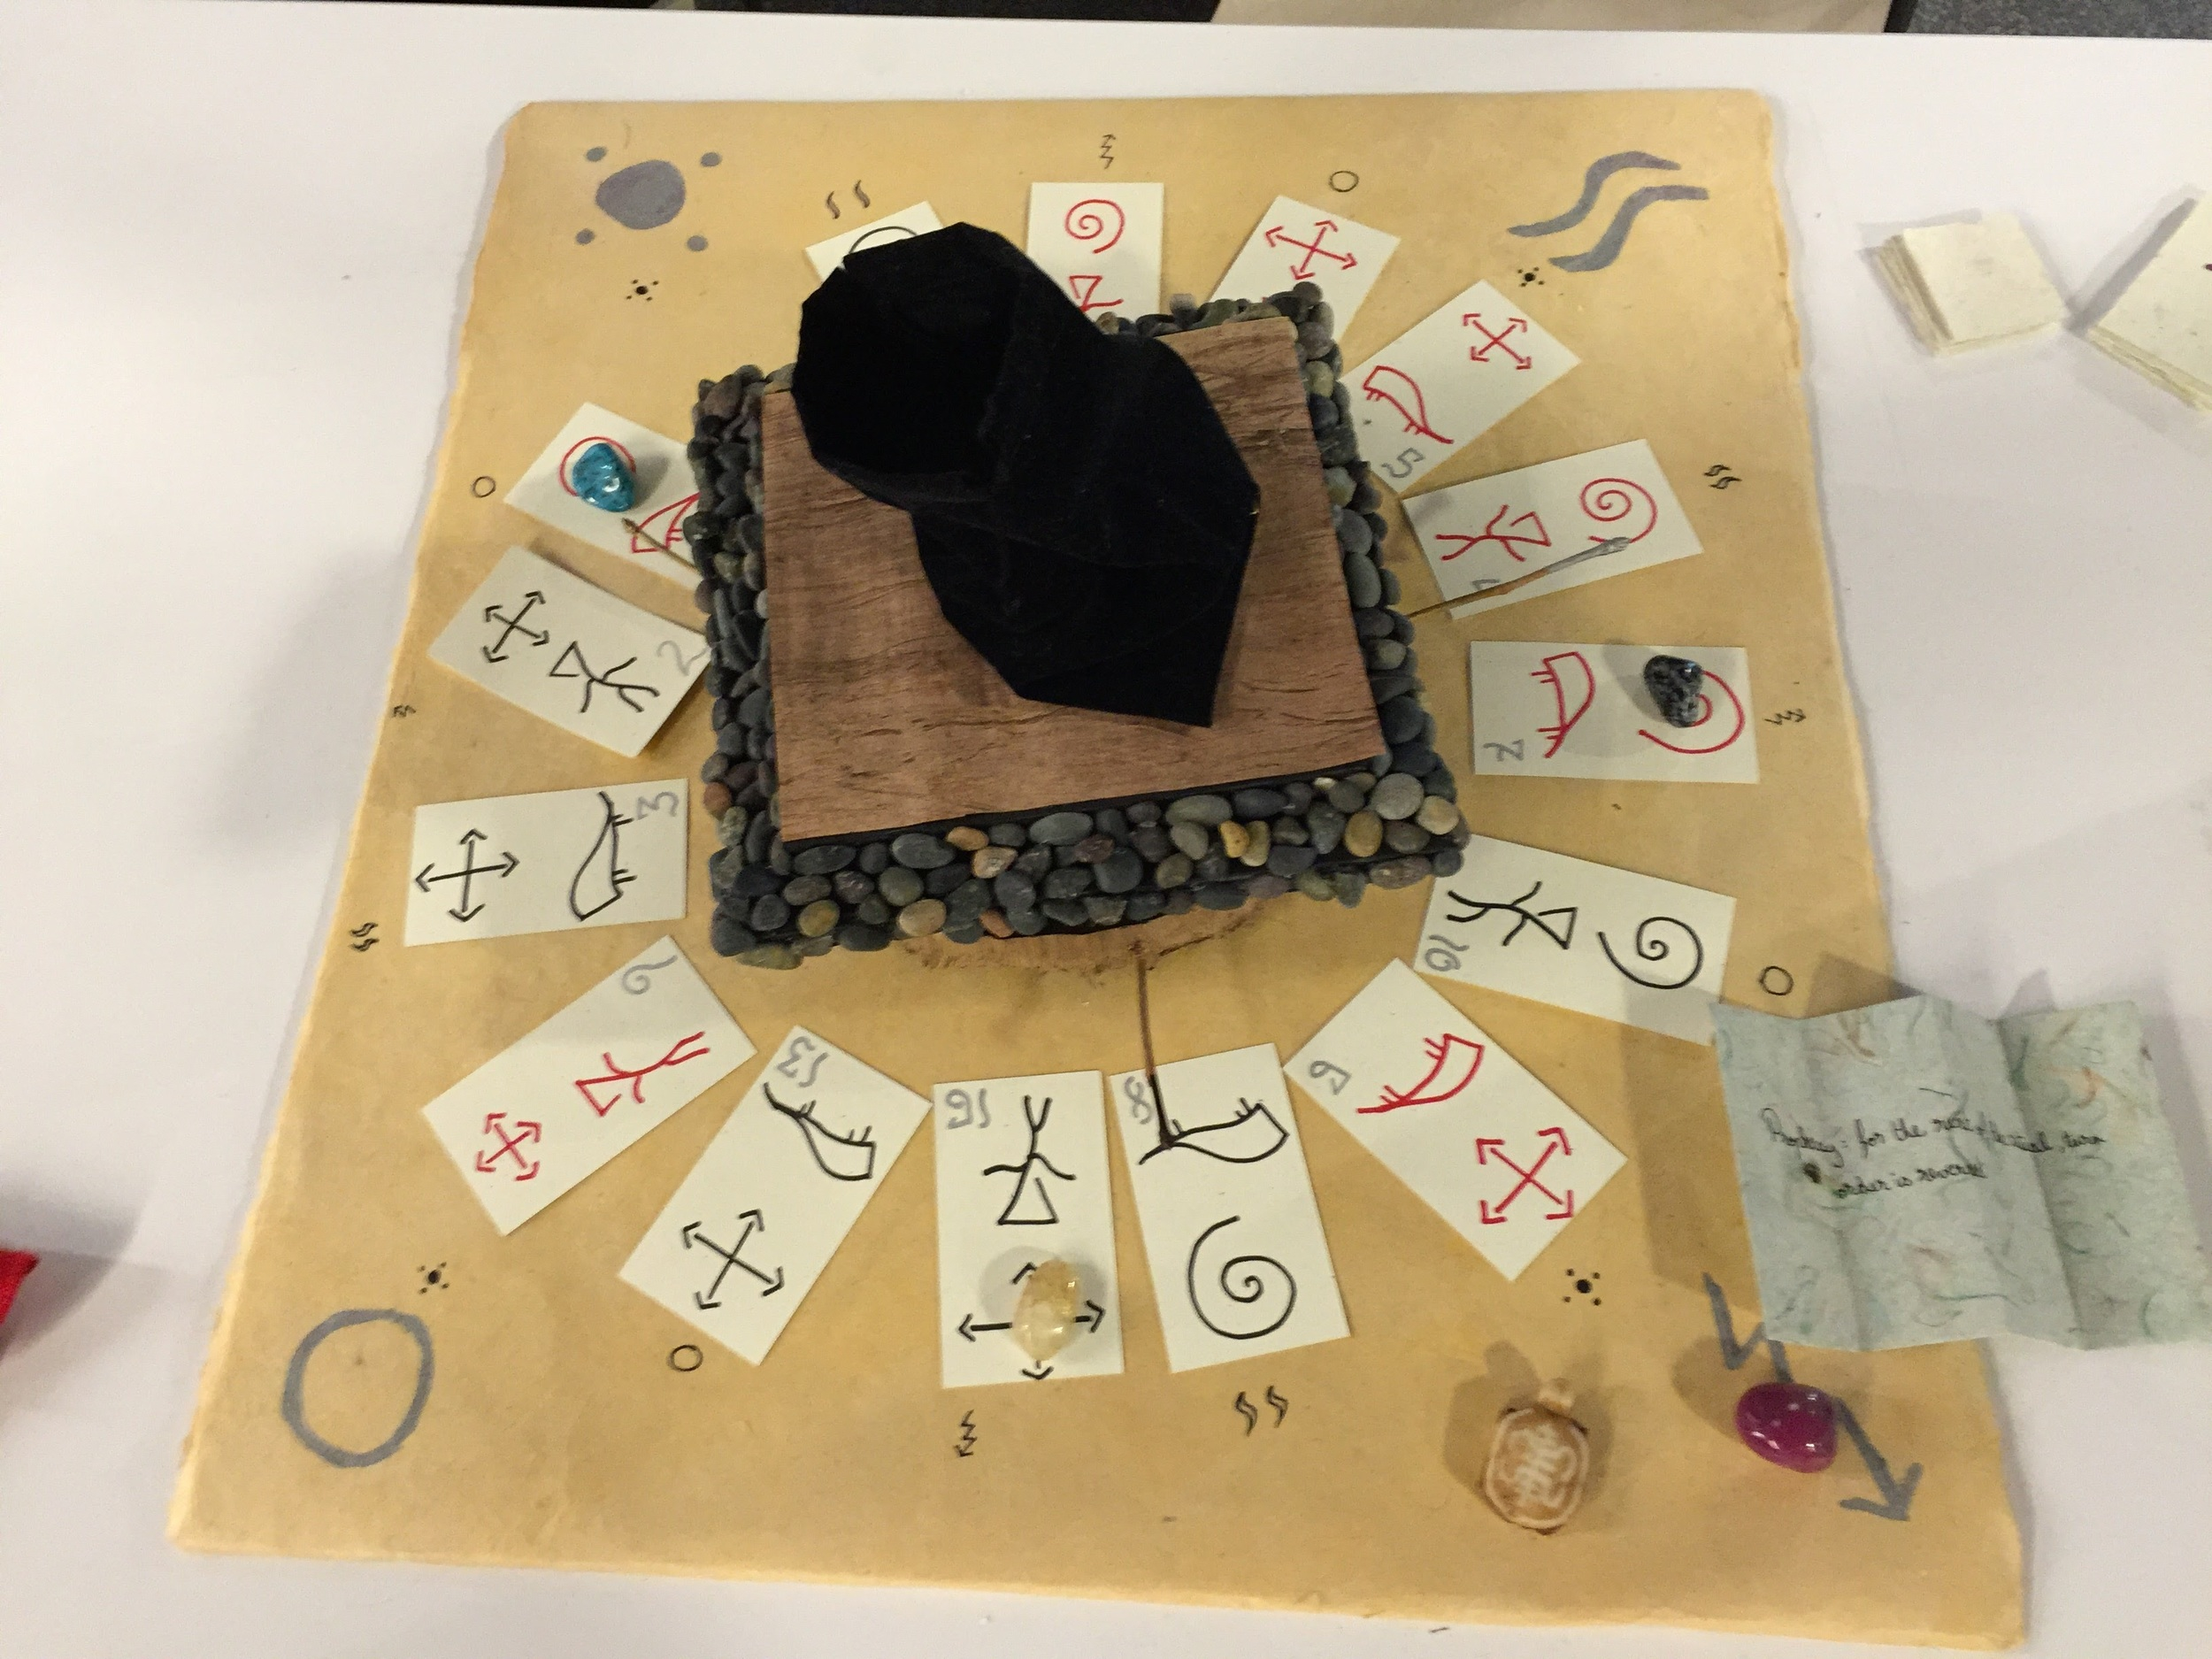 Seven Days of Sacrifice - a tabletop game made during the Global Game Jam 2016